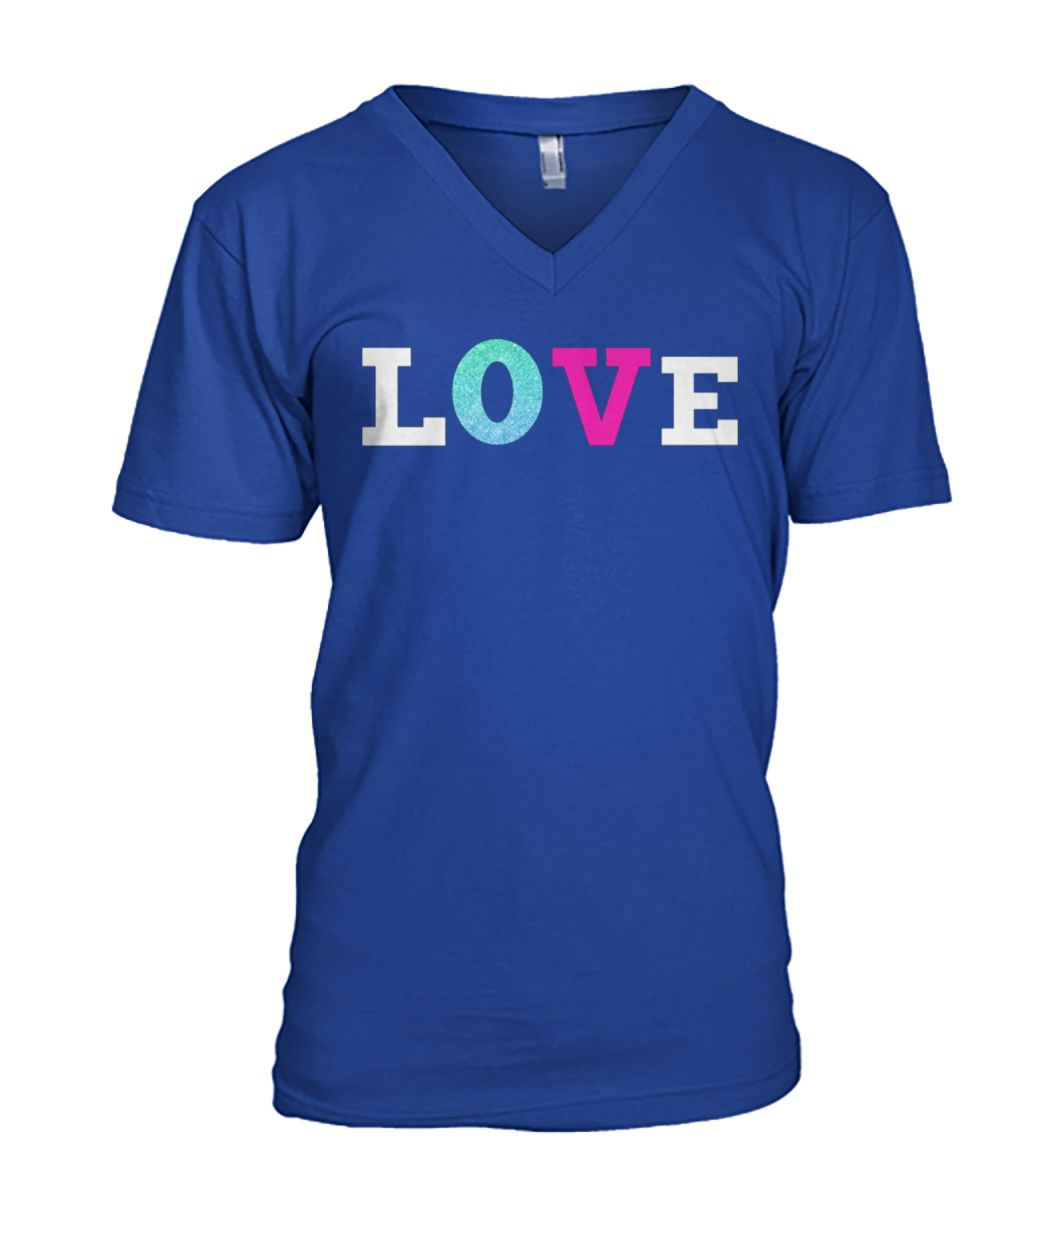 Savannah guthrie love mens v-neck